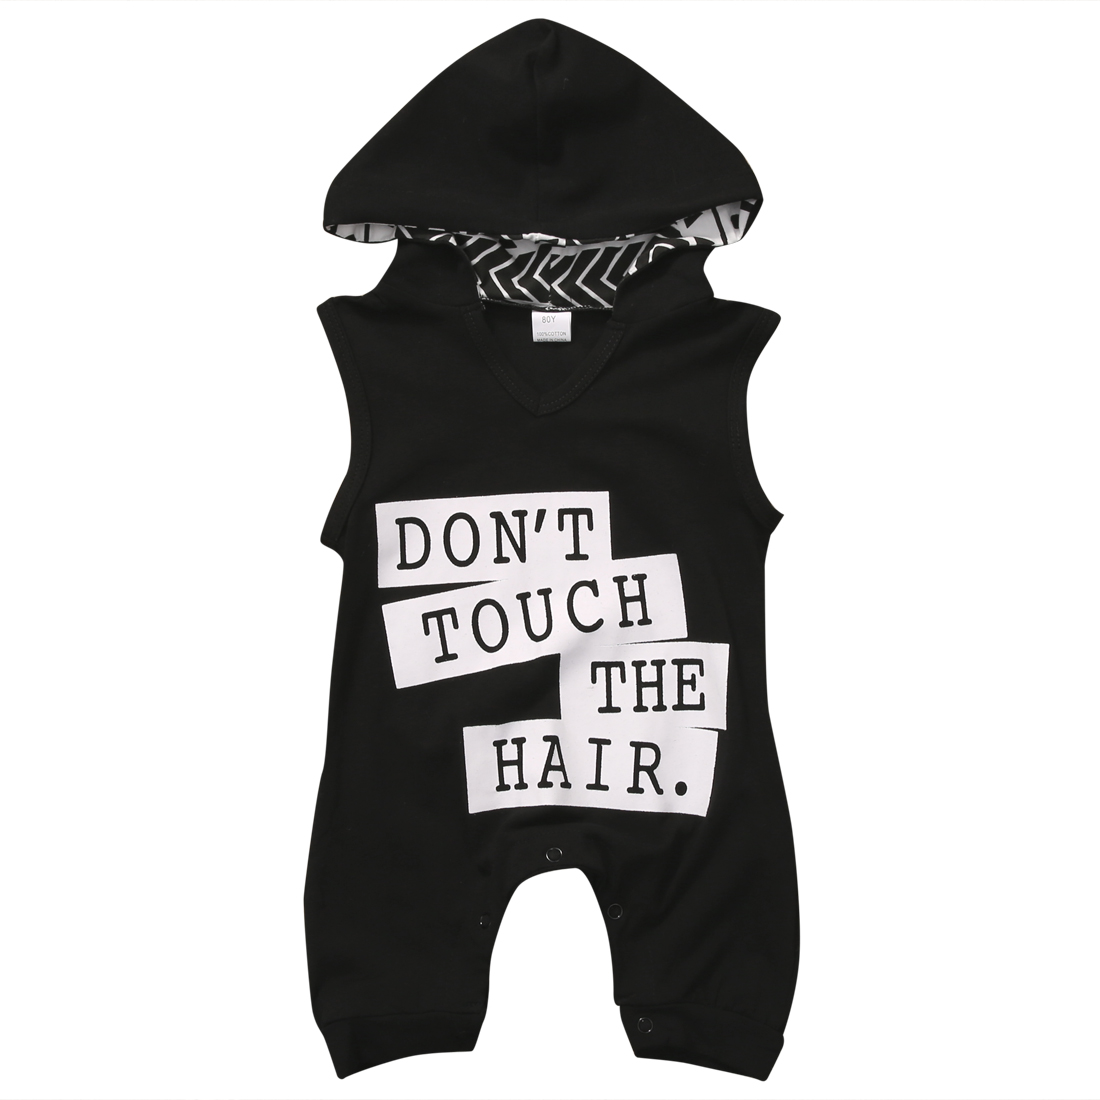 0-3Y Newborn Baby Boy Hooded Romper 2017 Summer Sleeveless Cool Design Infant Boys Clothes Cotton Outfits newborn infant baby boys girls hooded romper jumpsuit clothes romper baby clothes baby boy clothes outfits